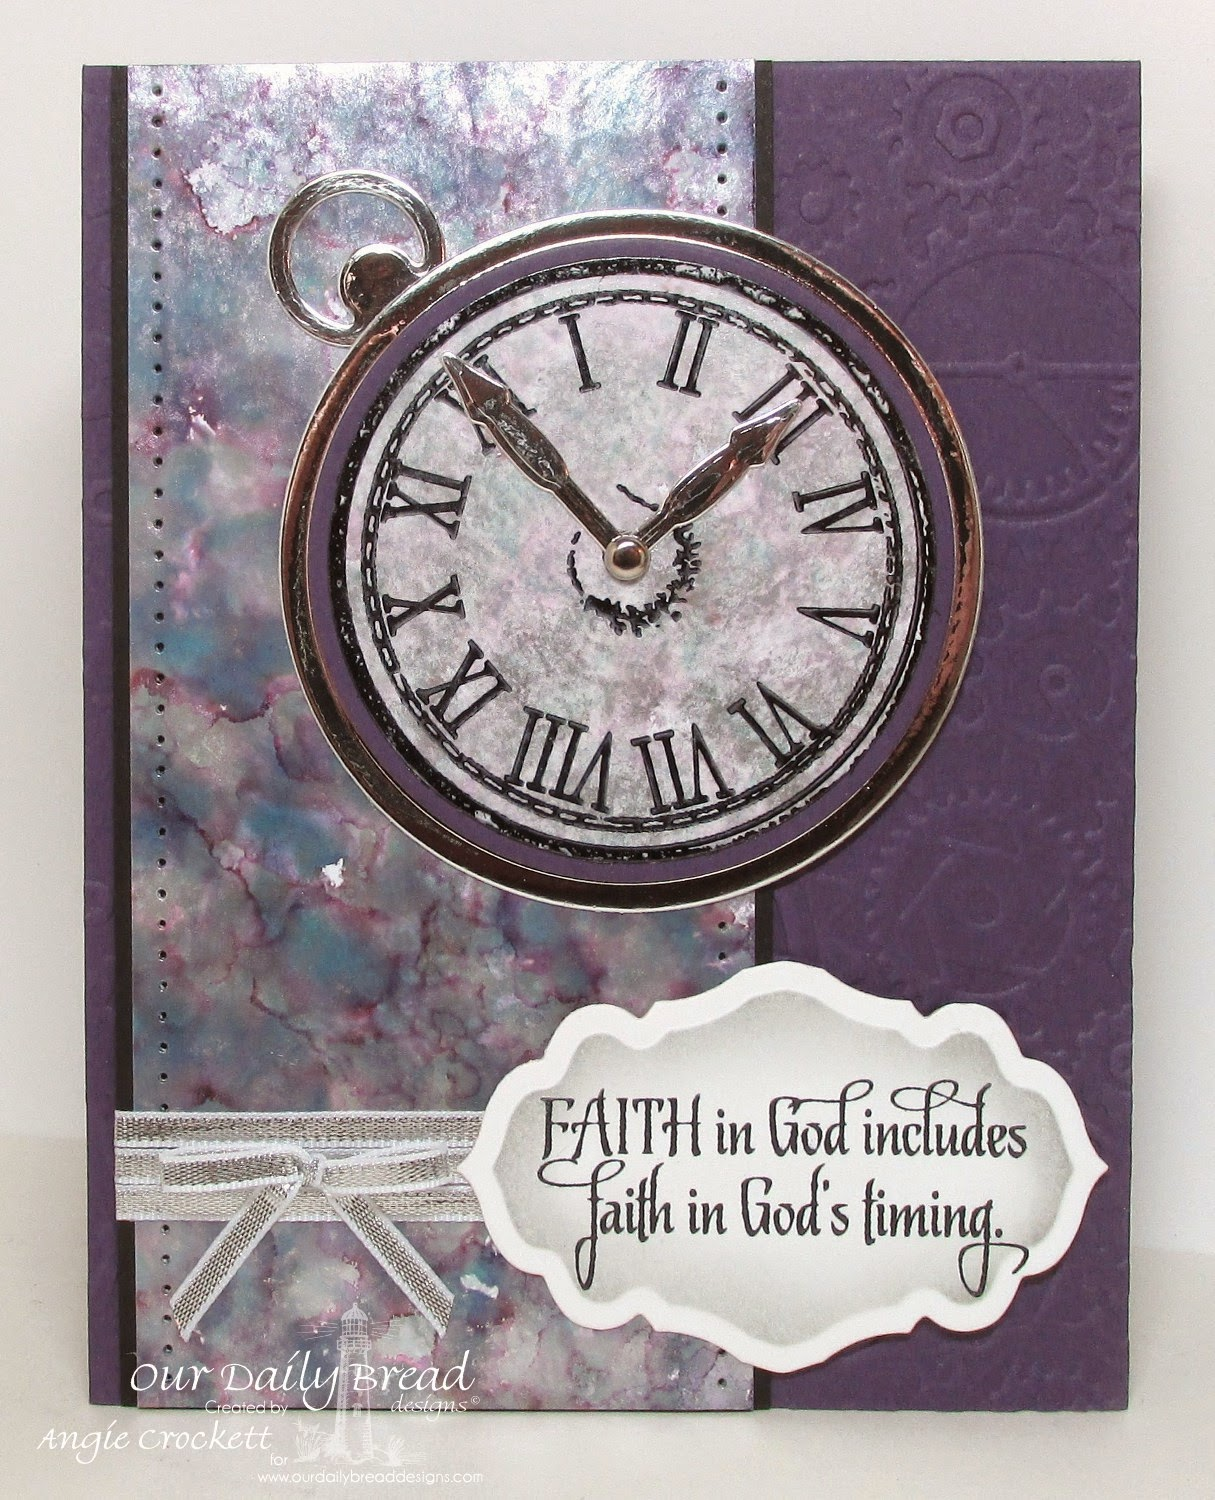 ODBD God's Timing, ODBD Custom Matting Circles Dies, ODBD Custom Circle Ornaments Dies, ODBD Custom Antique Labels and Border Dies, Card Designer Angie Crockett